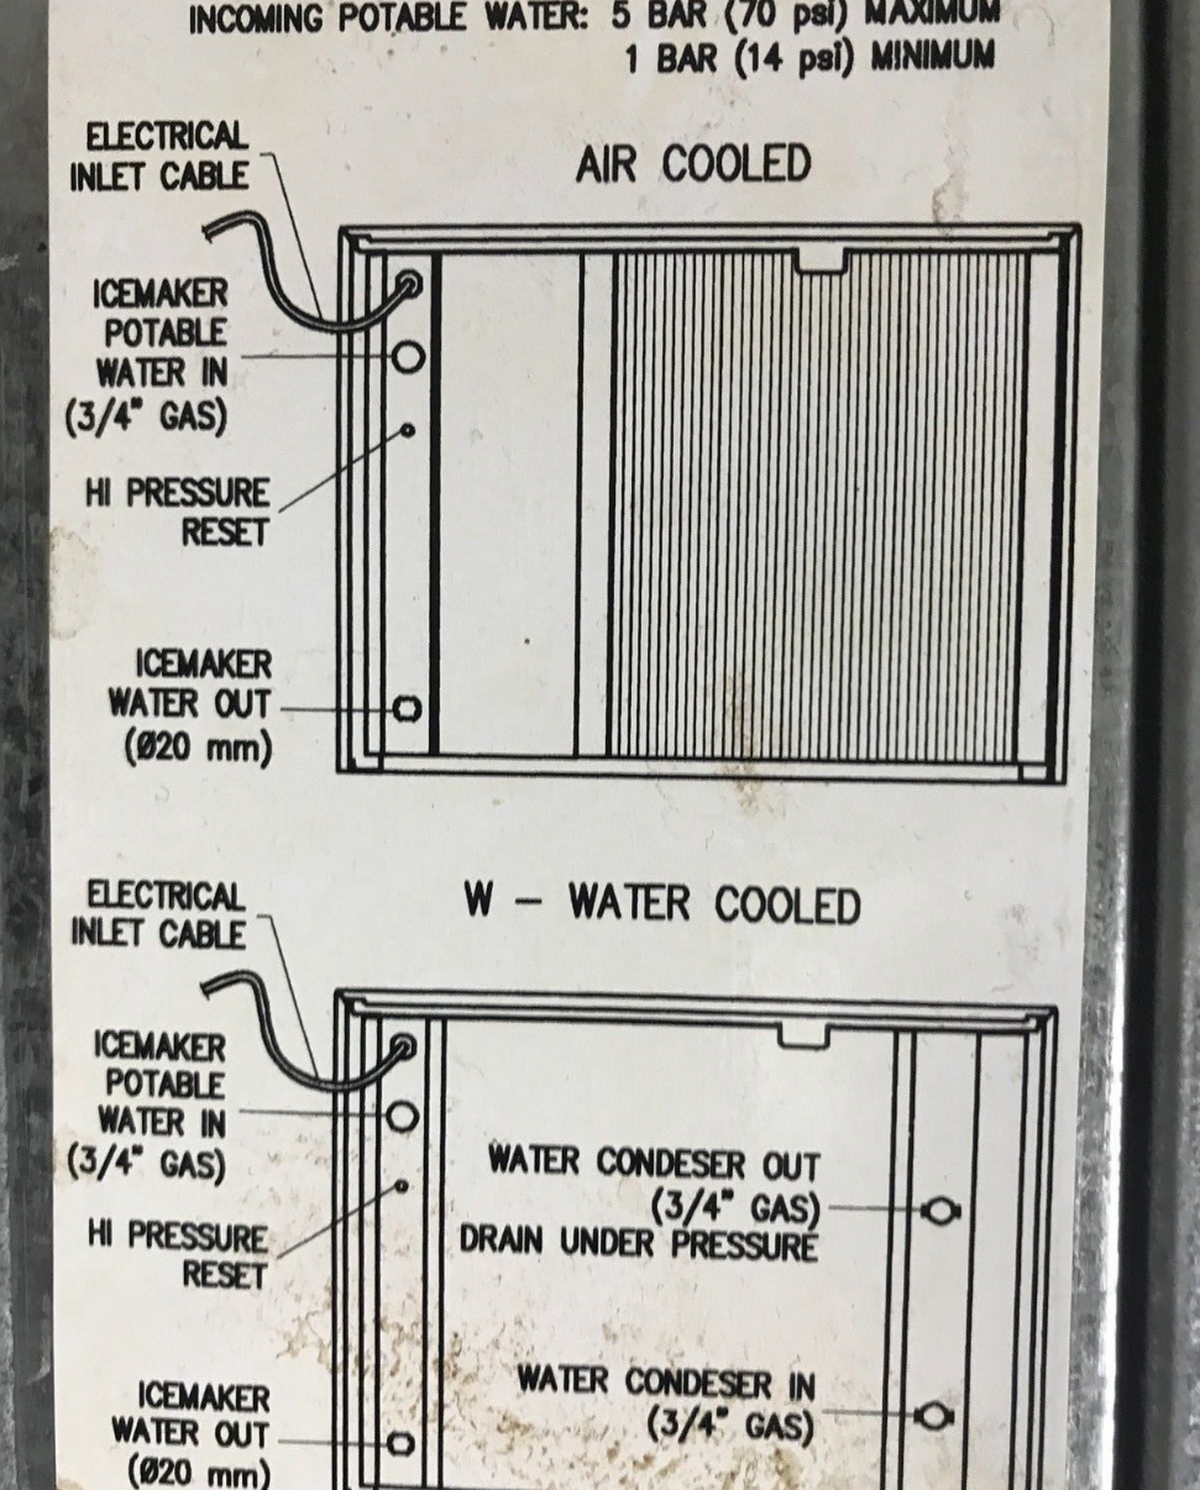 Scotsman ice machine troubleshooting guide